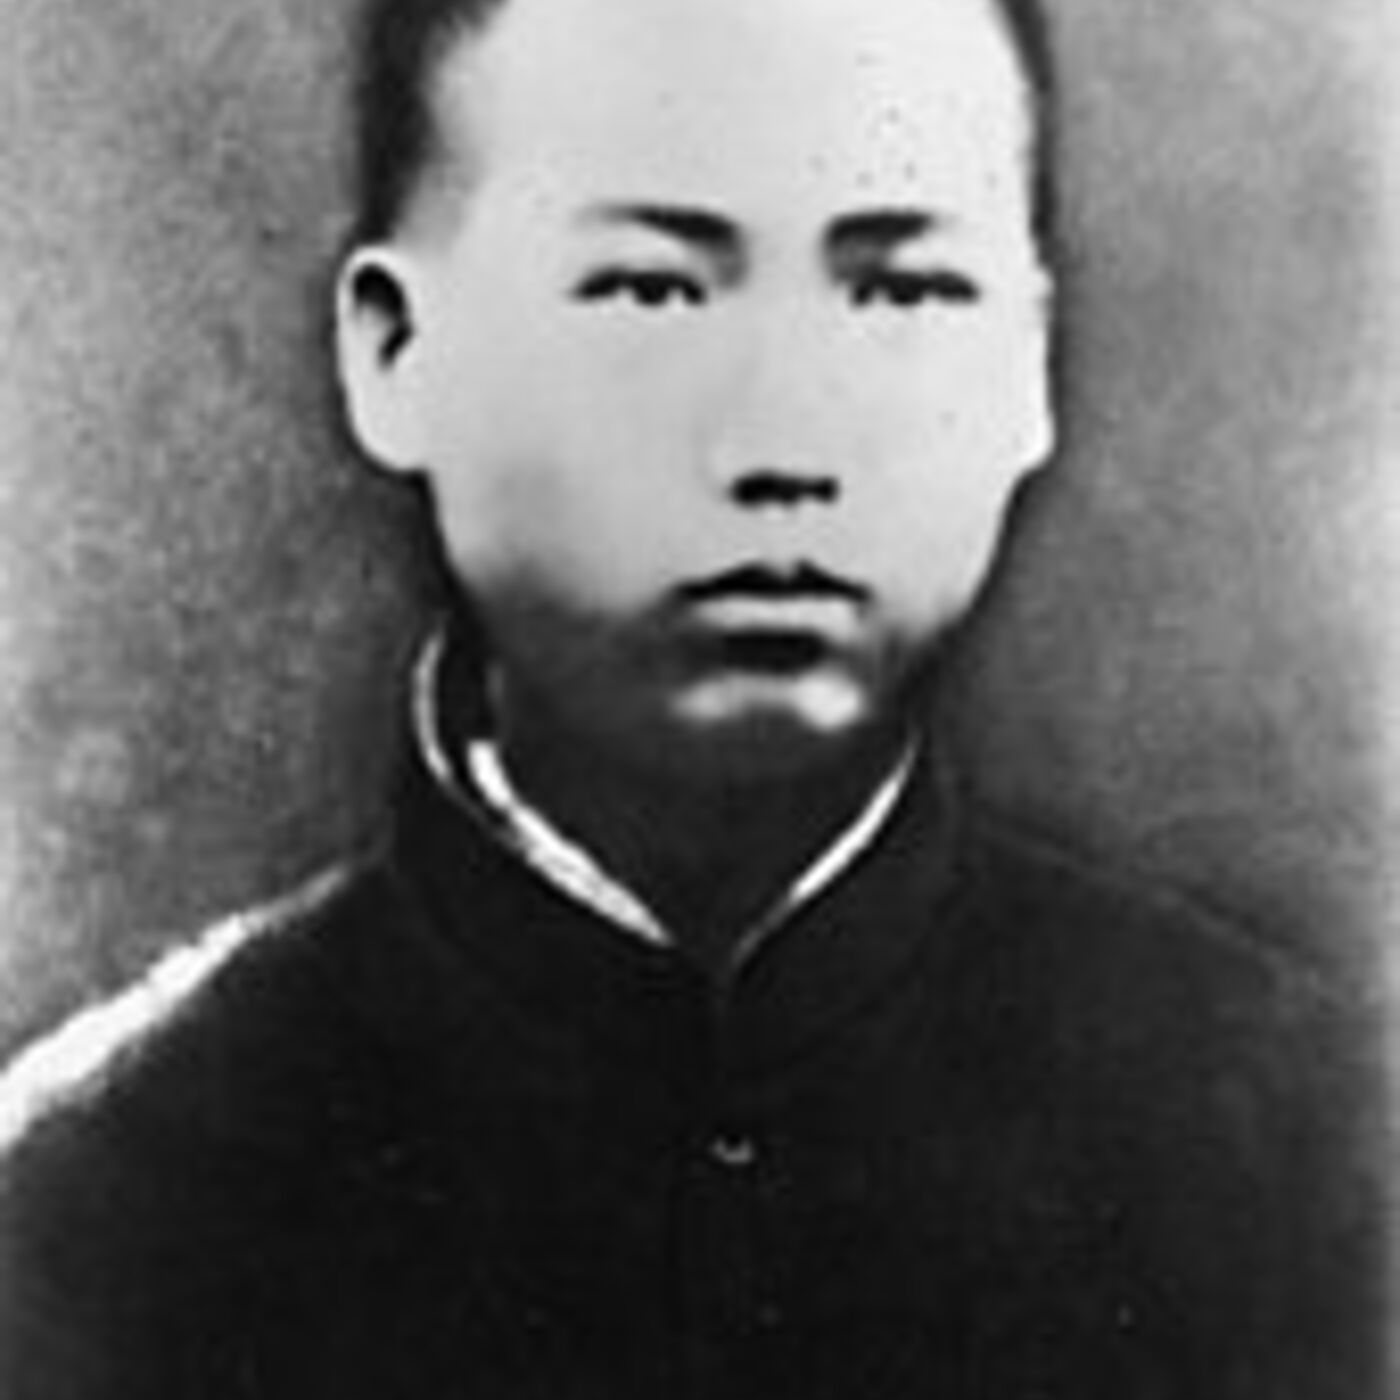 The Young Mao Zedong